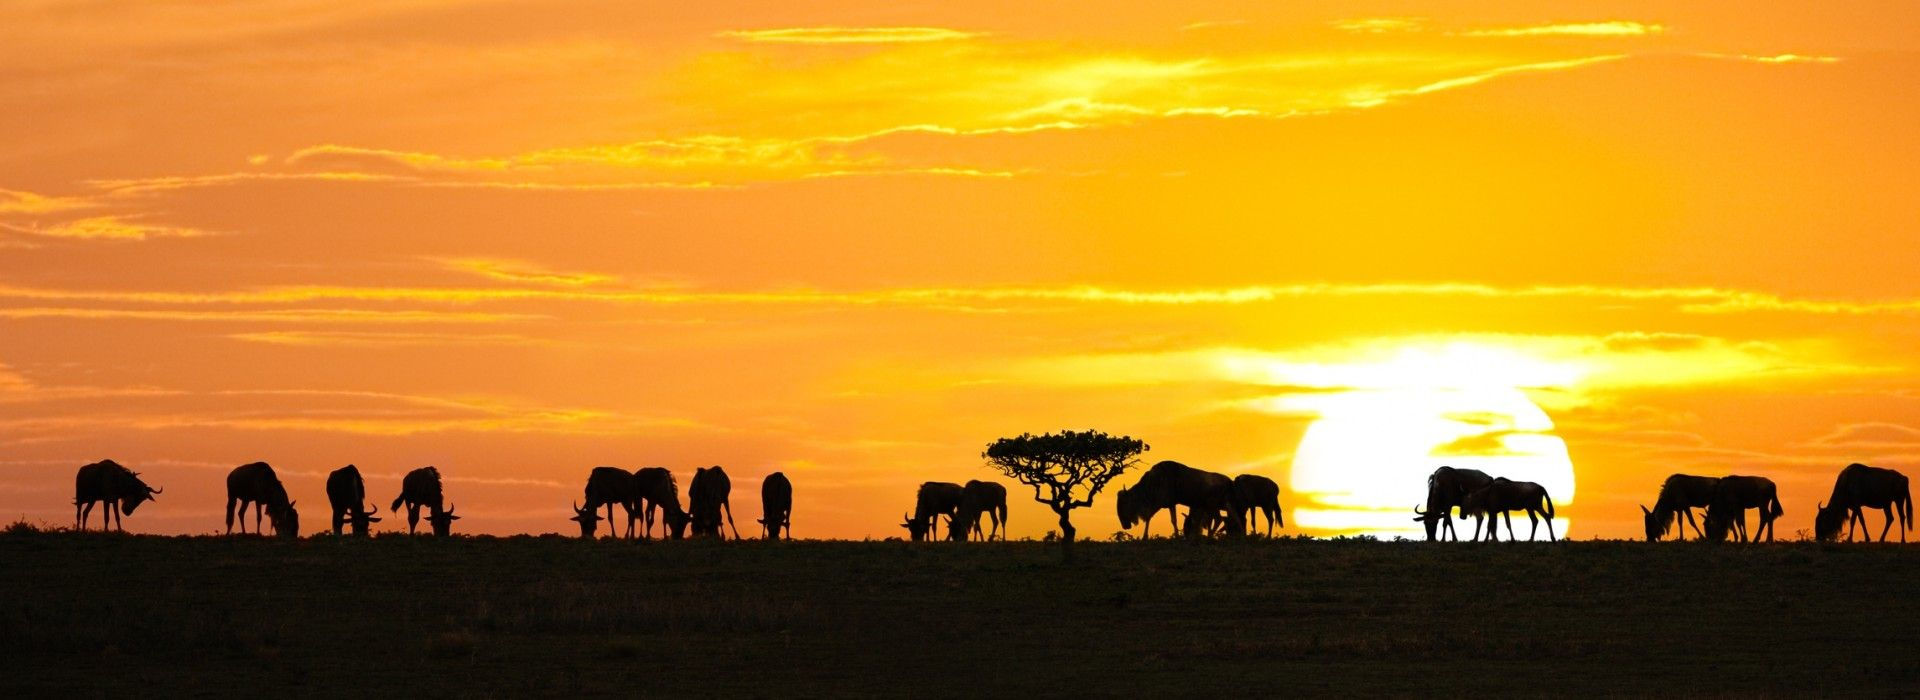 Sightseeing, attractions, culture and history Tours in Tanzania Safari Parks